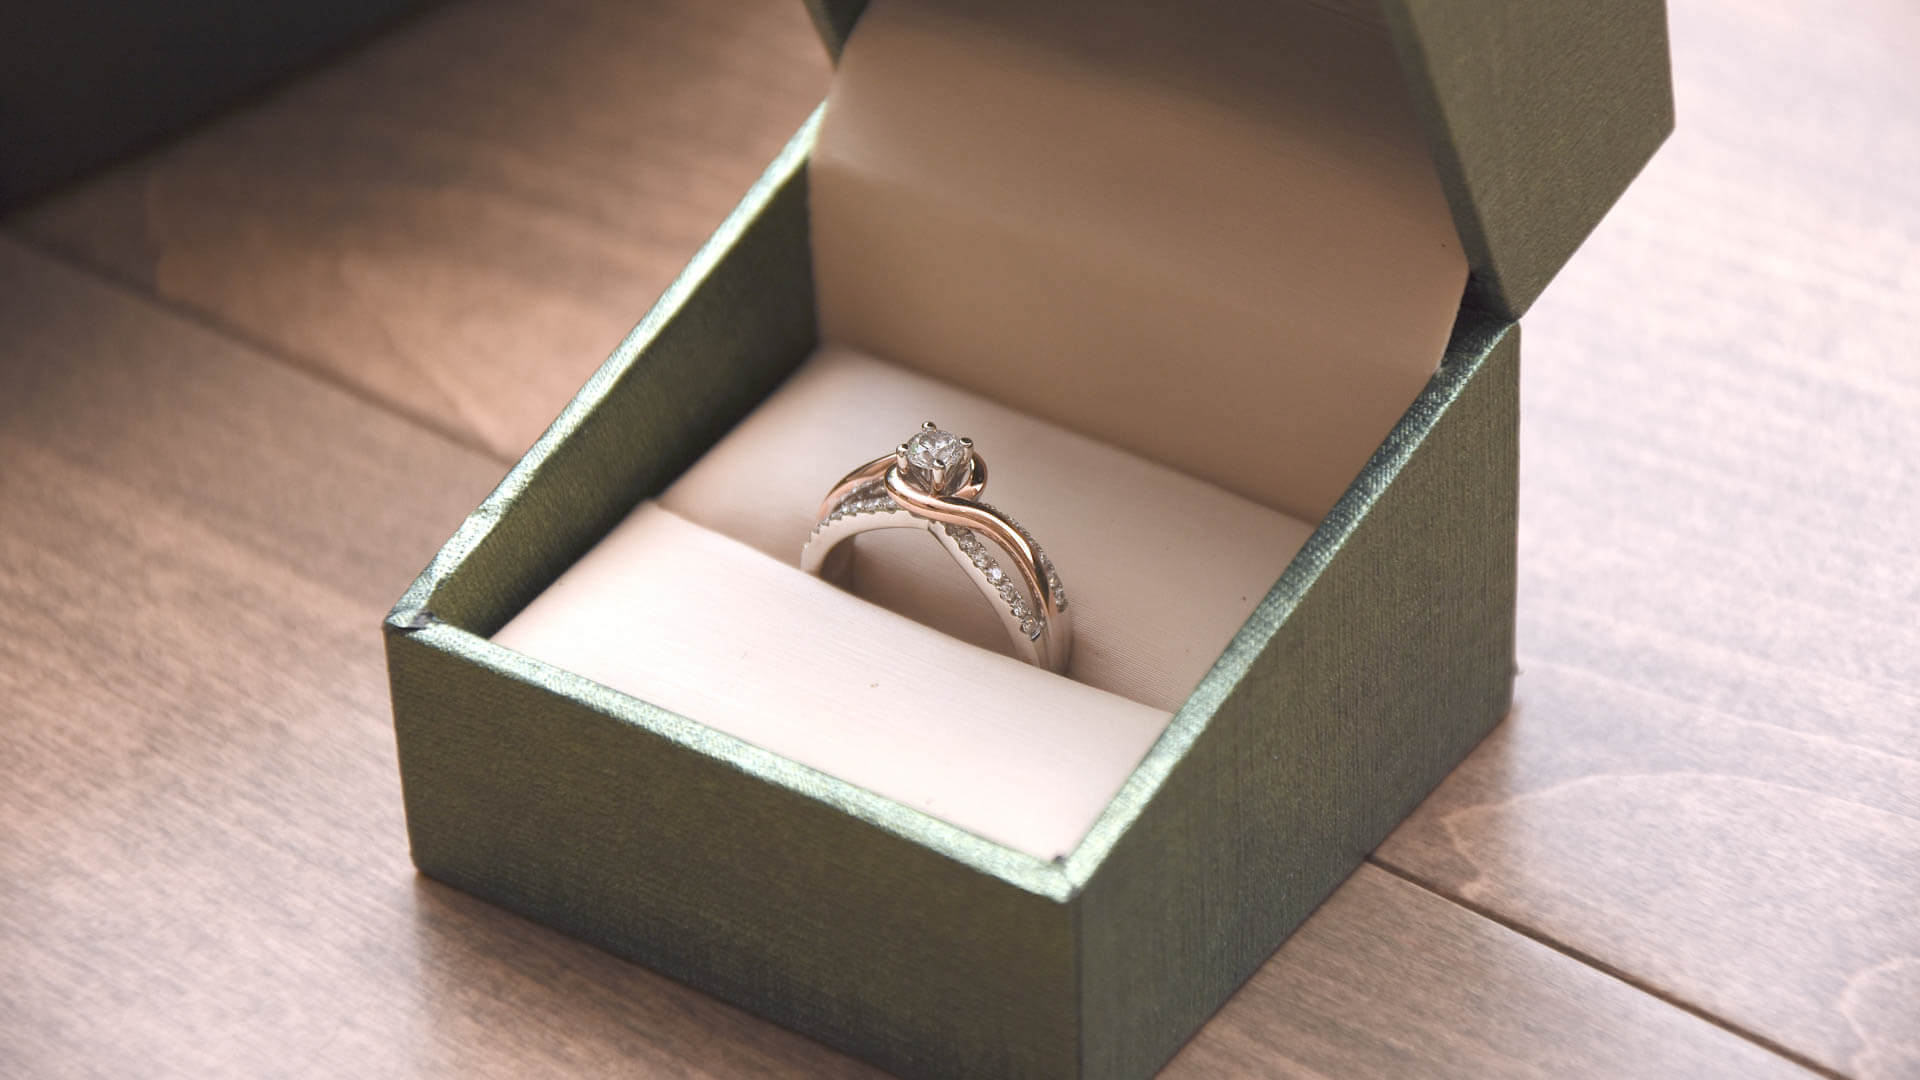 I Pawned My Grandmother's Wedding Ring to Bail Someone Out